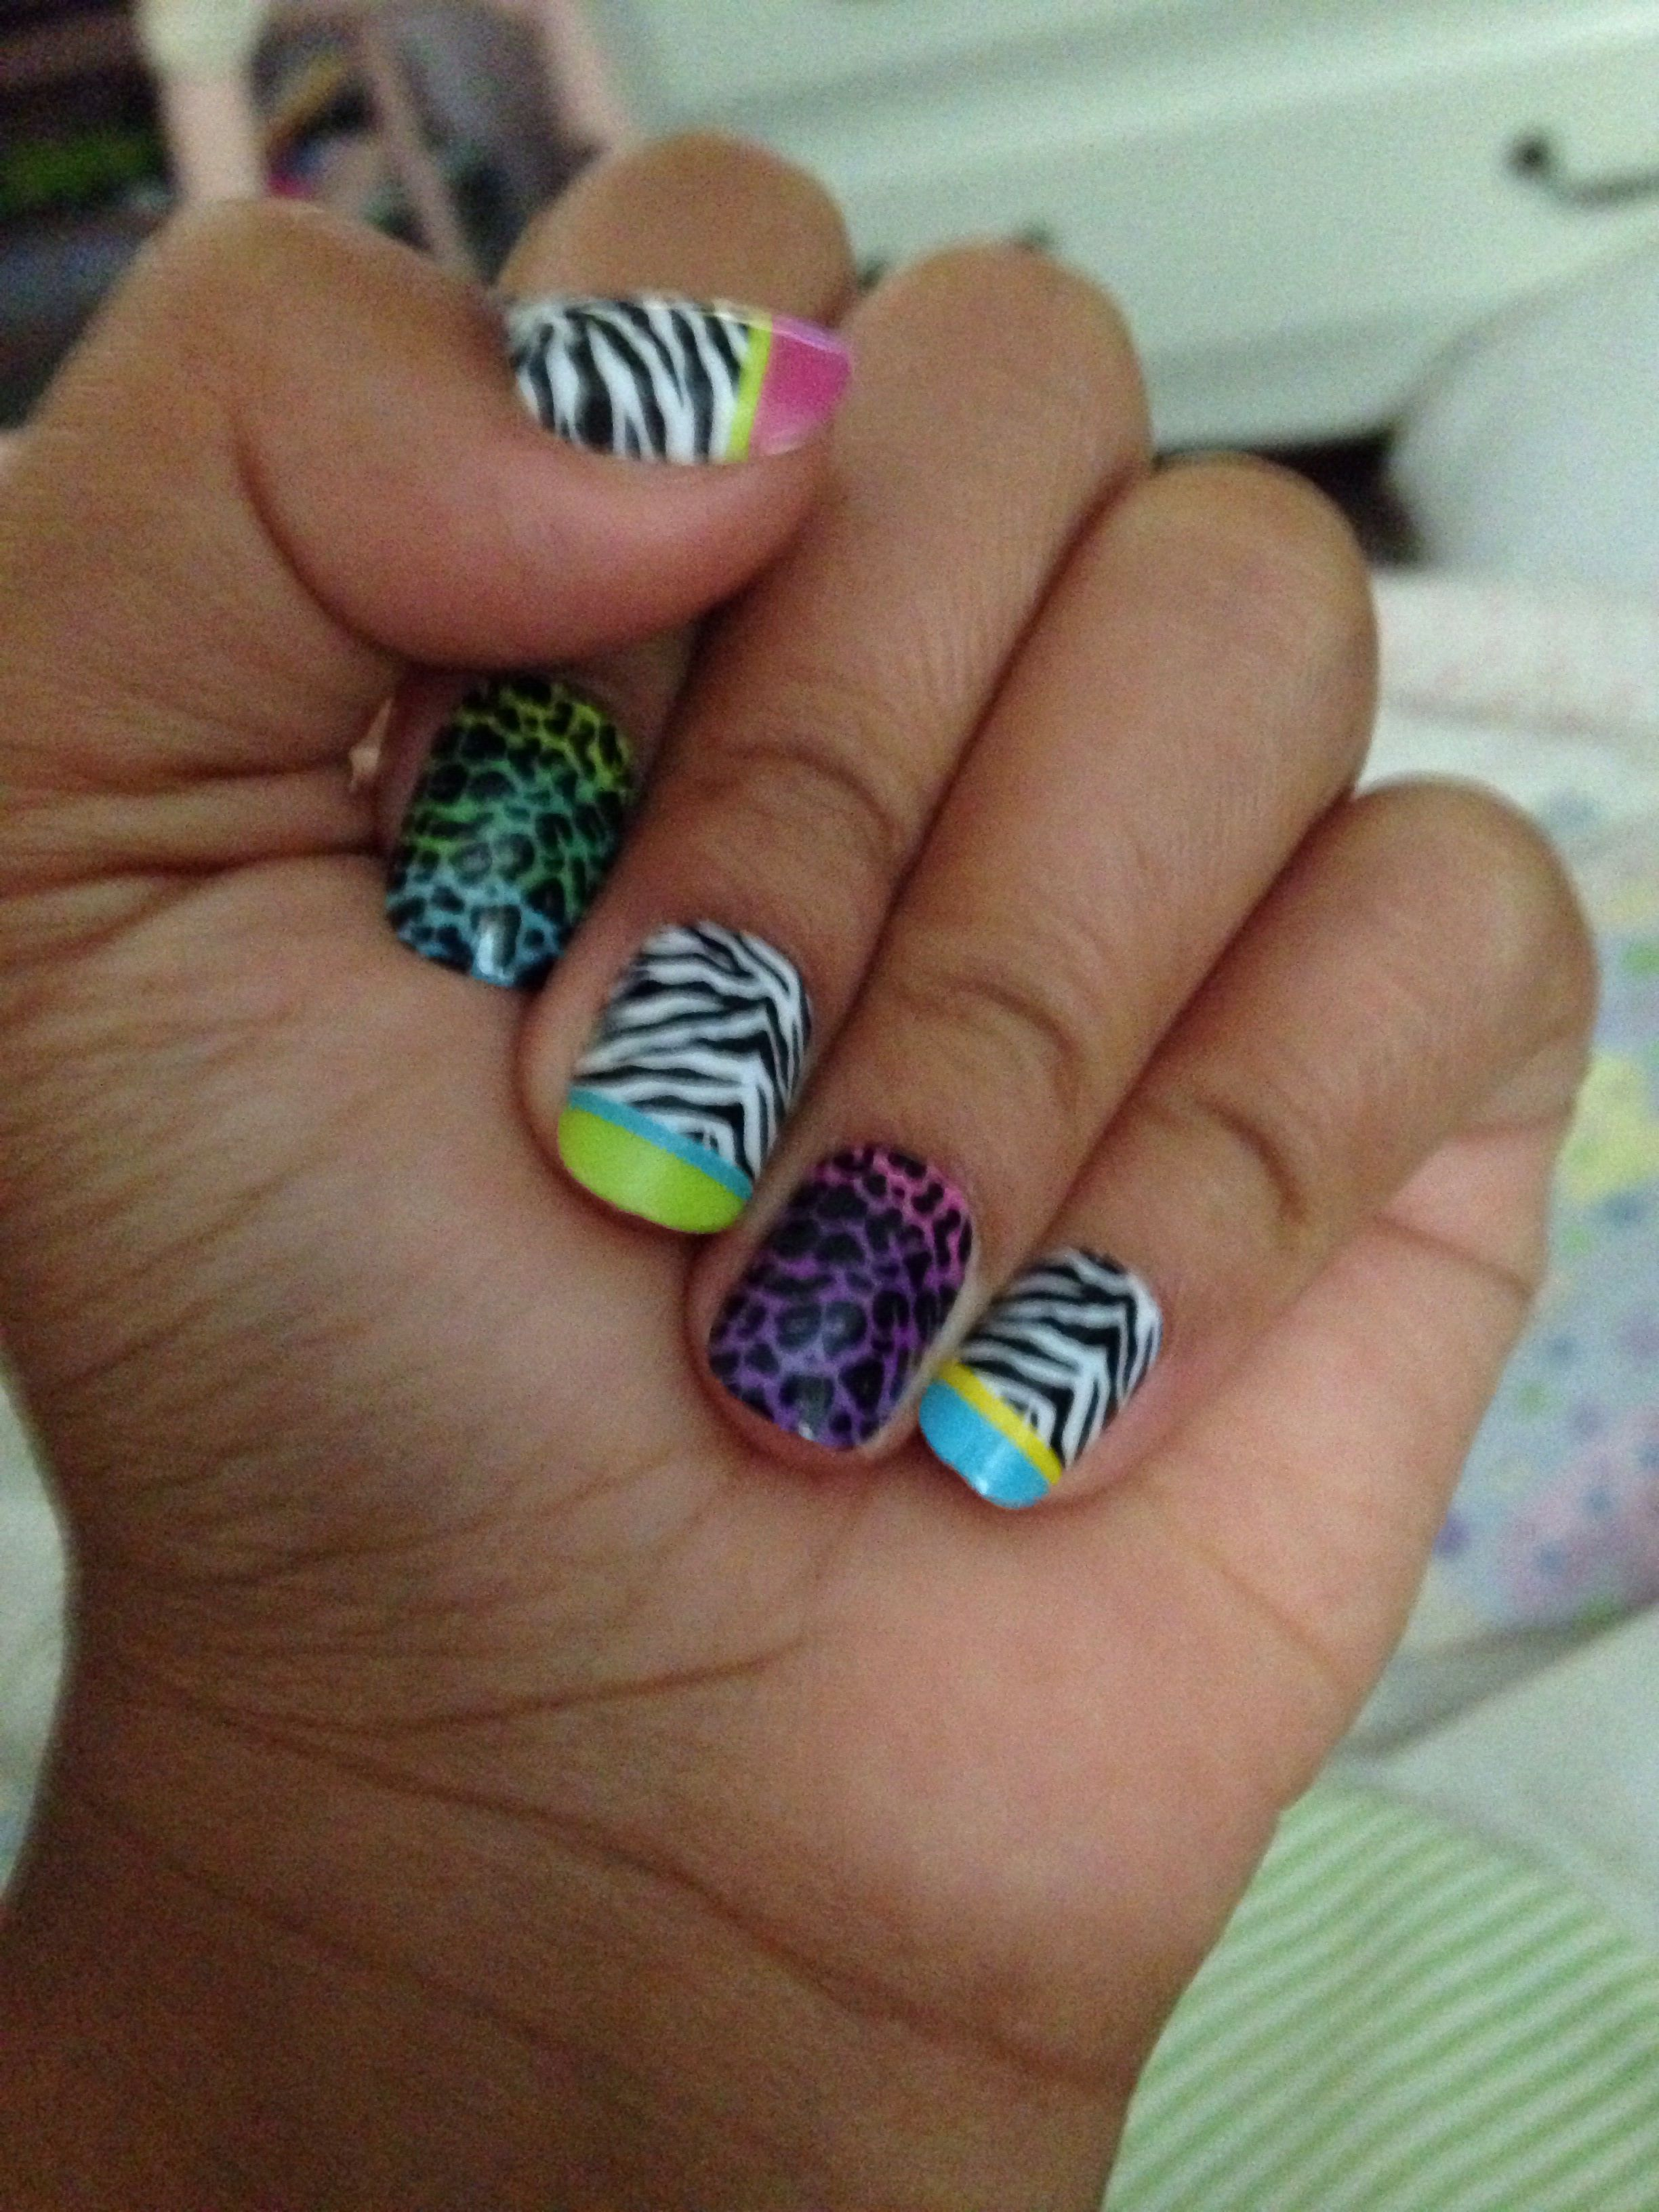 They are fake nails you can get them at justice animal print ...